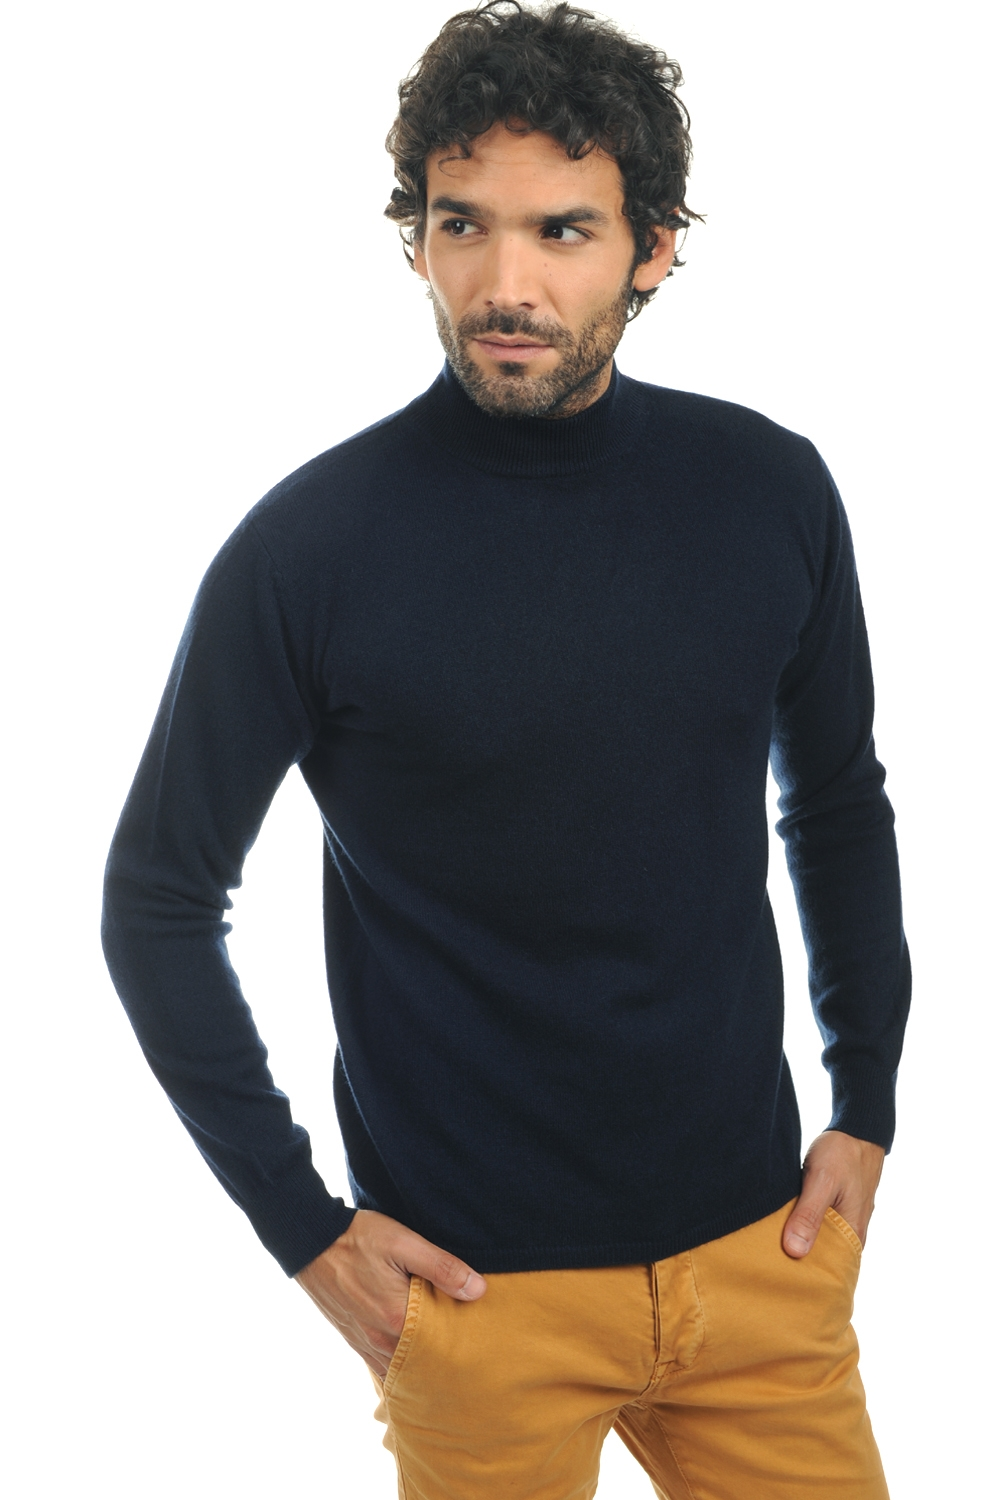 cachemire pull homme col roule frederic marine fonce m